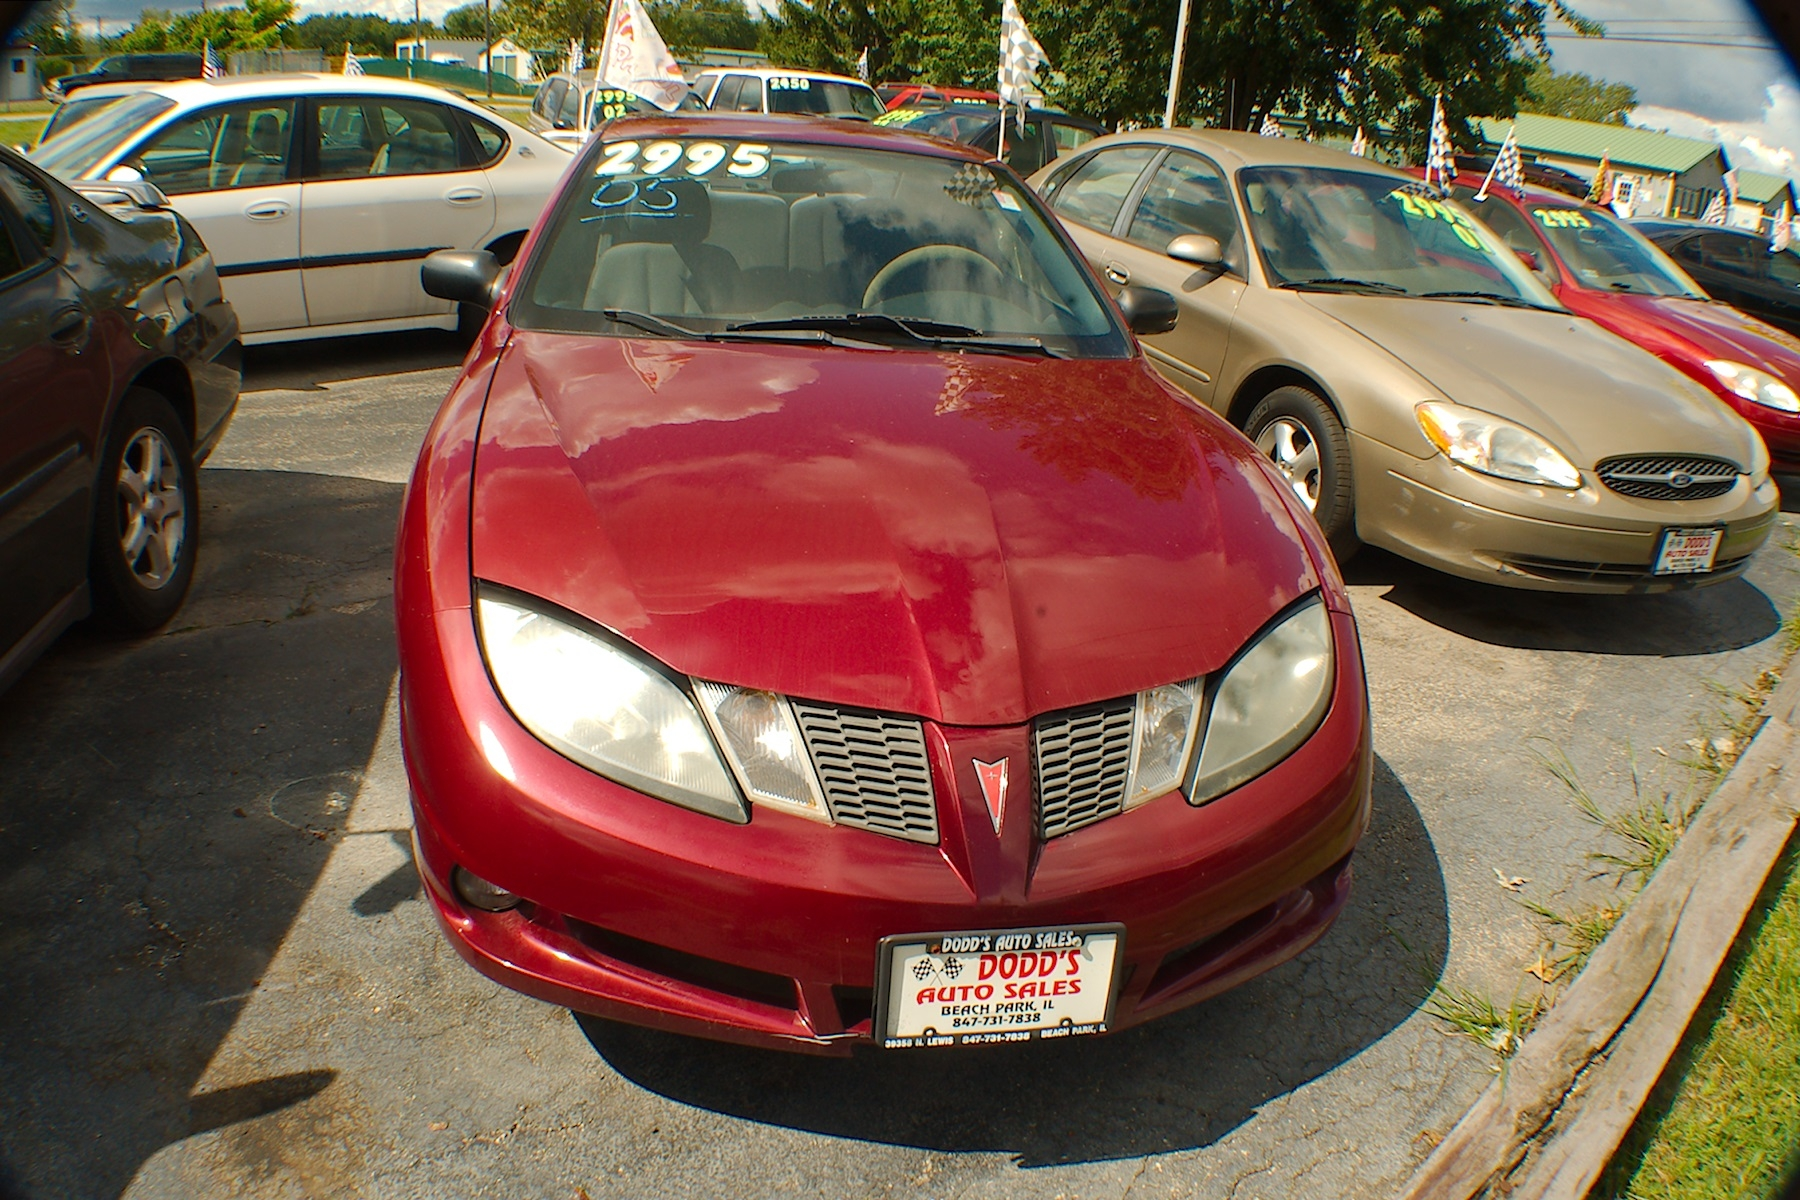 2005 Pontiac Sunfire Burgundy Sedan Used Car Sale Gurnee Kenosha Mchenry Chicago Illinois